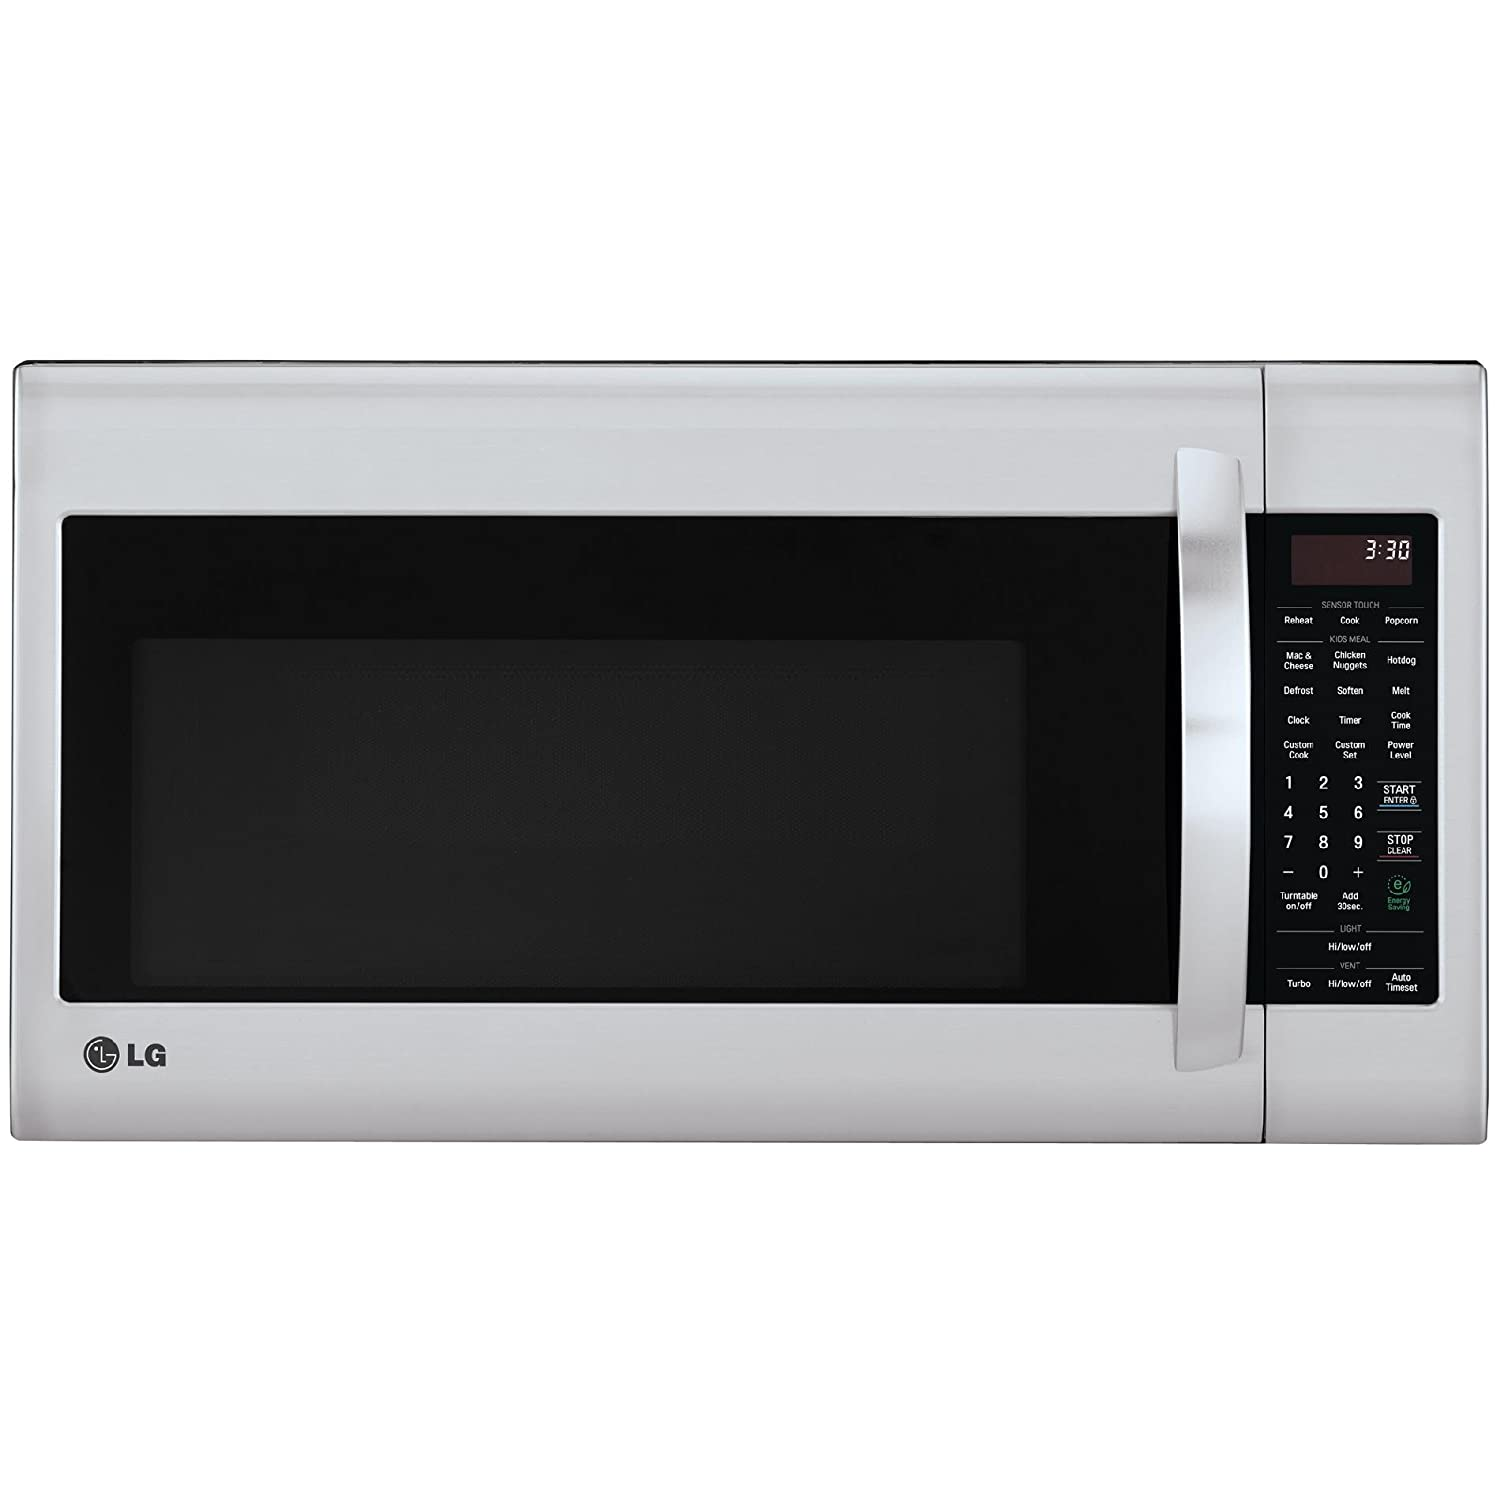 LG LMV2031ST 2.0 Cubic Feet Over-The-Range Microwave Oven